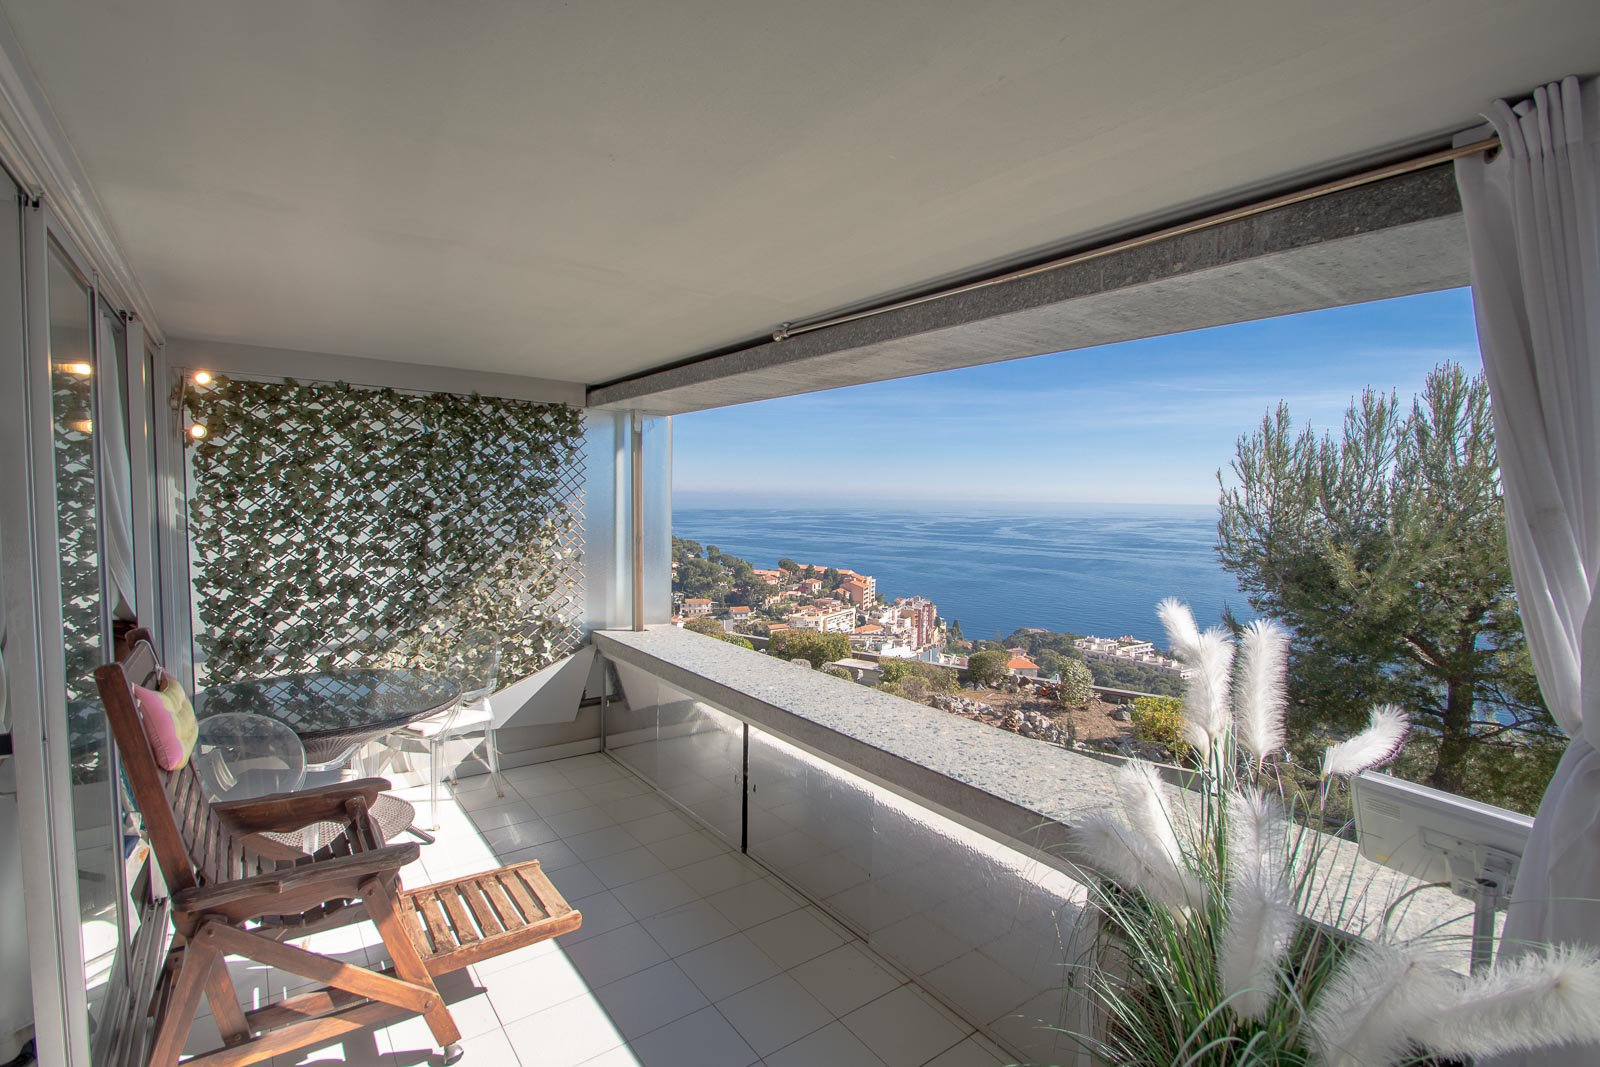 Apartment in Cap-d'Ail with large terrace and panoramic sea view, in a luxury residence with pool and restaurant